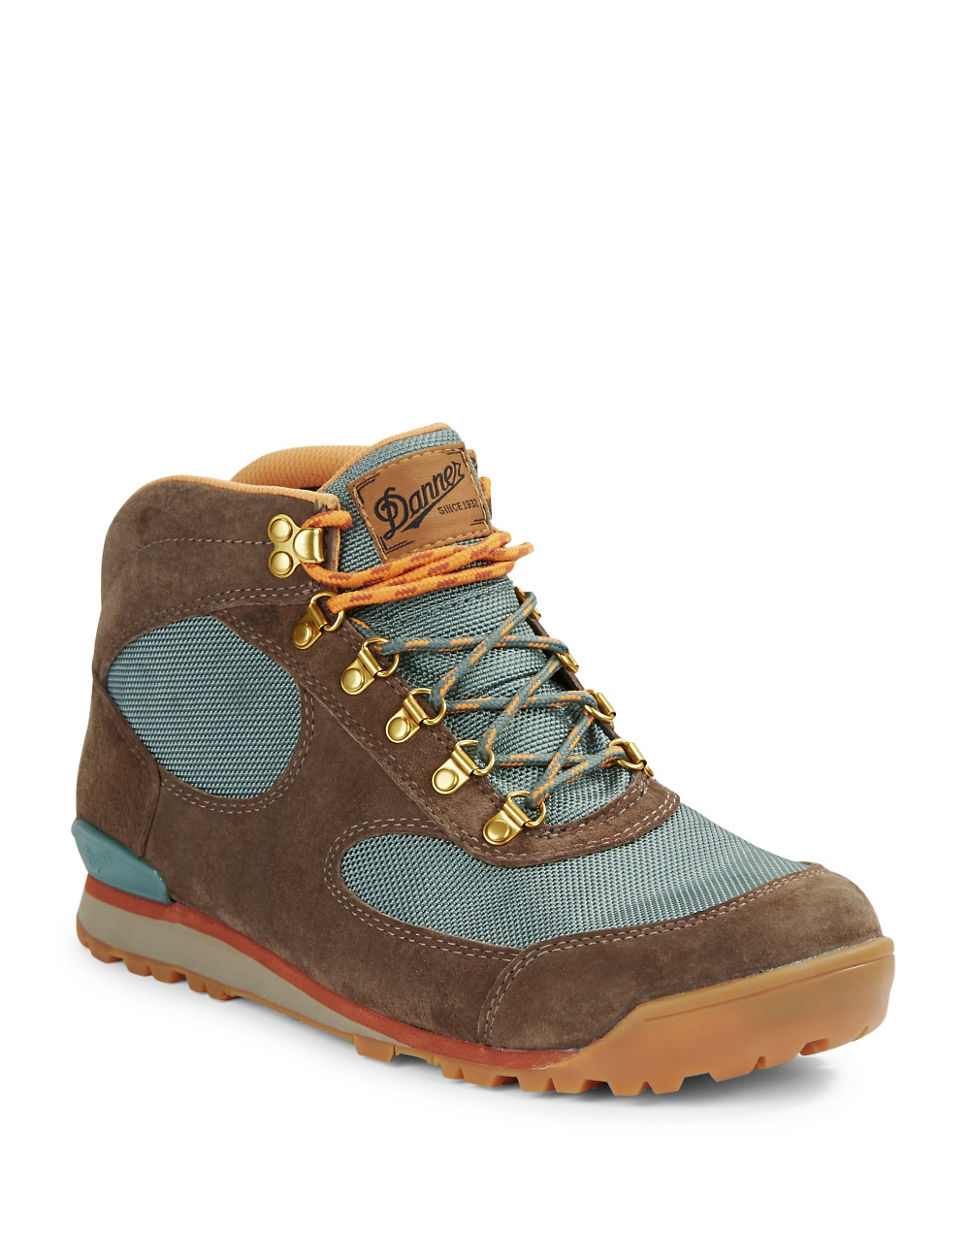 914f3480b3f Danner Blue Jag Colorblocked Hiking Boots for men